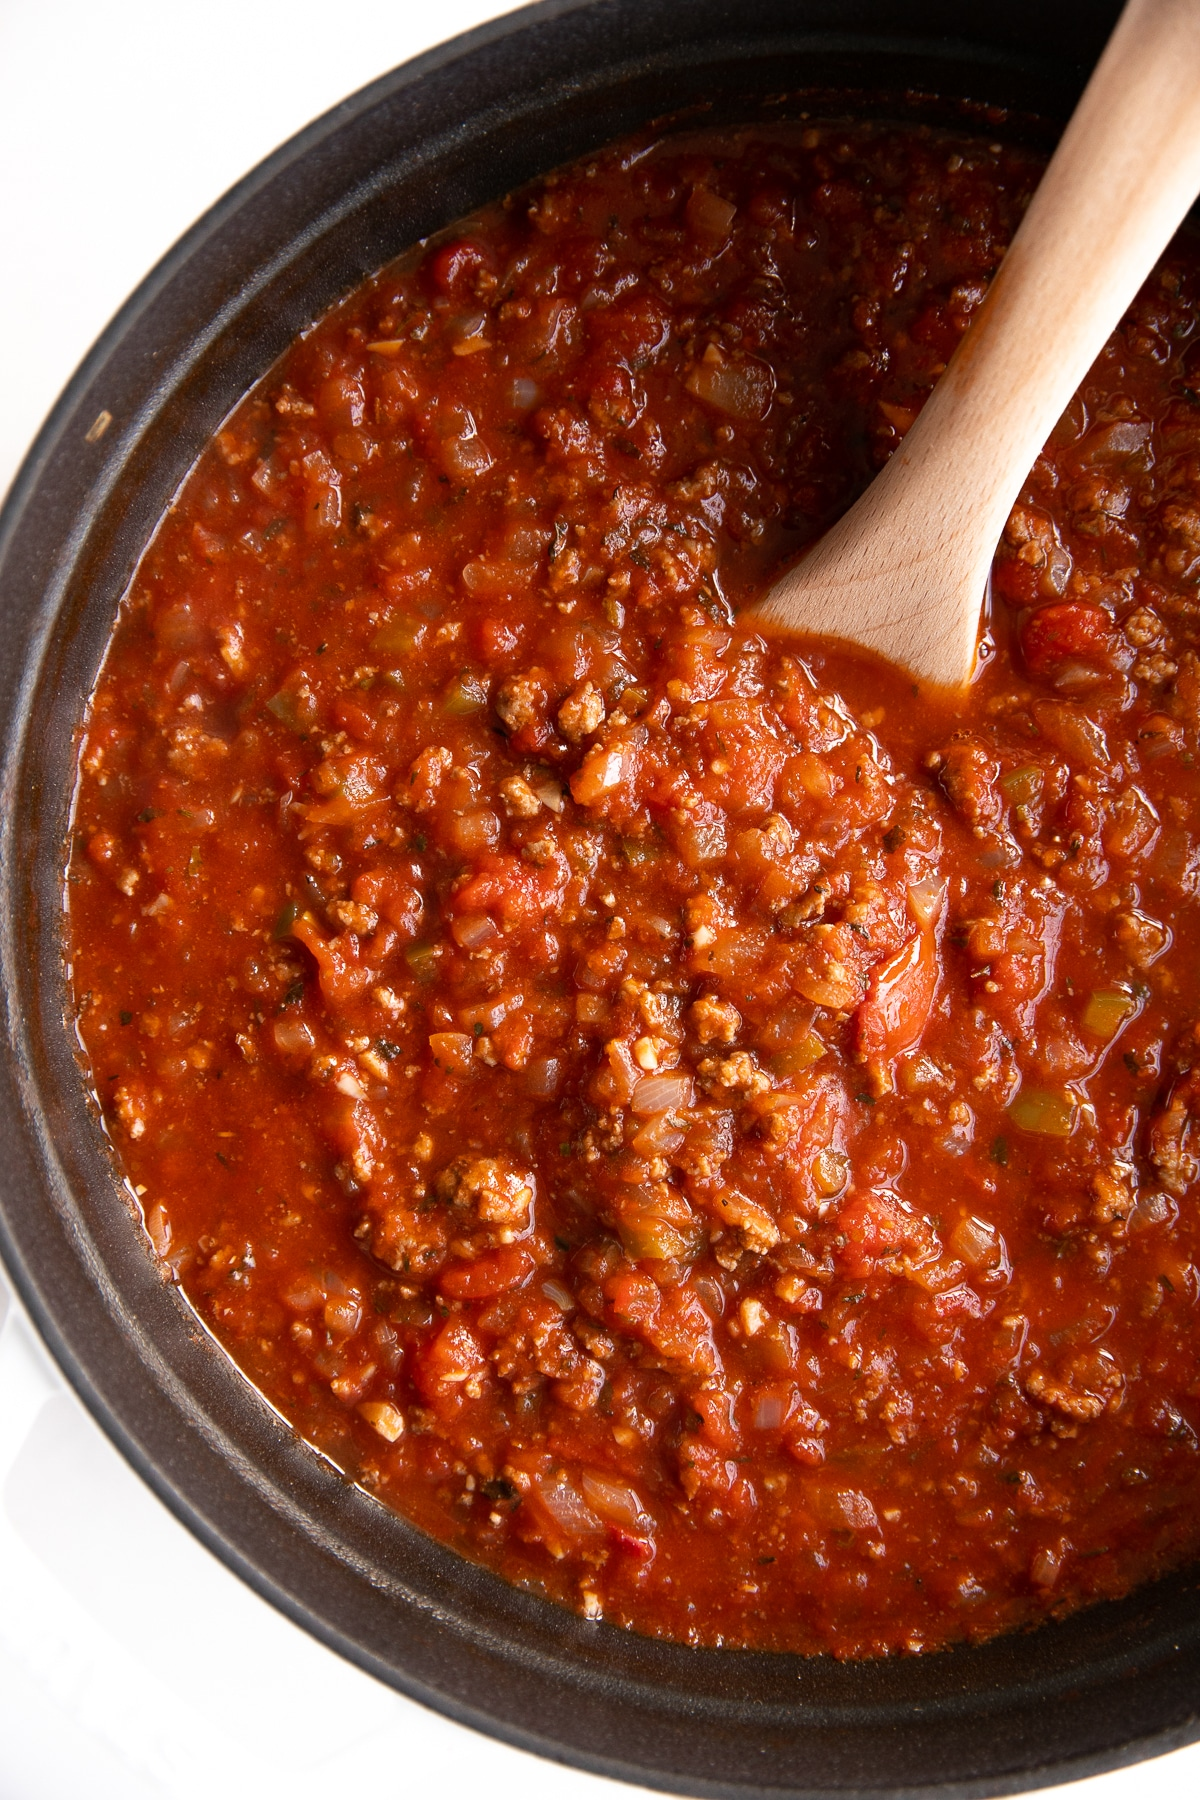 Best Spaghetti Sauce Recipe How To